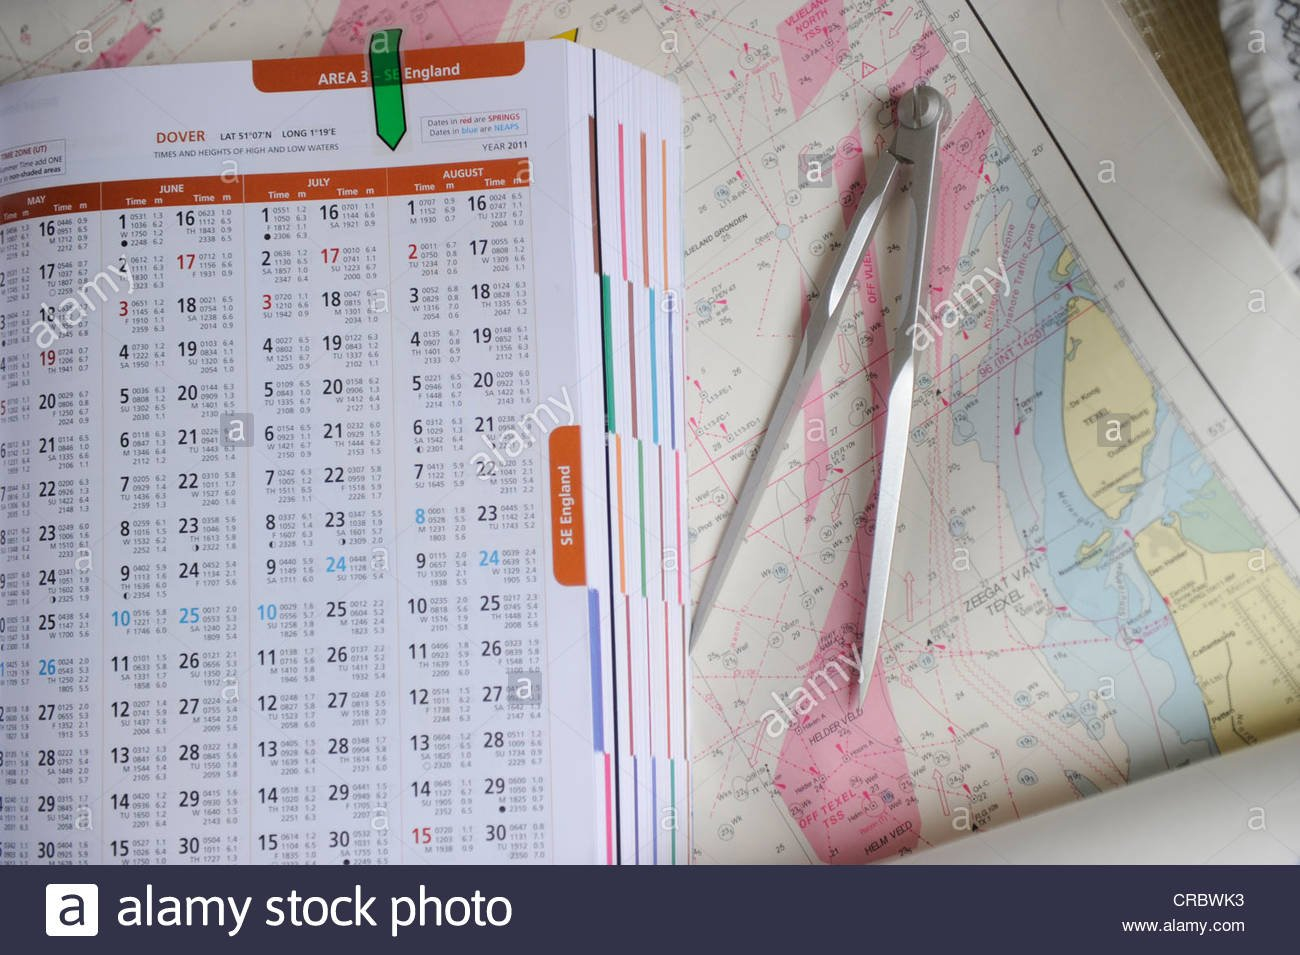 Tide Table Stock Photos & Tide Table Stock Images - Alamy Tide Calendar 2019 Zanzibar